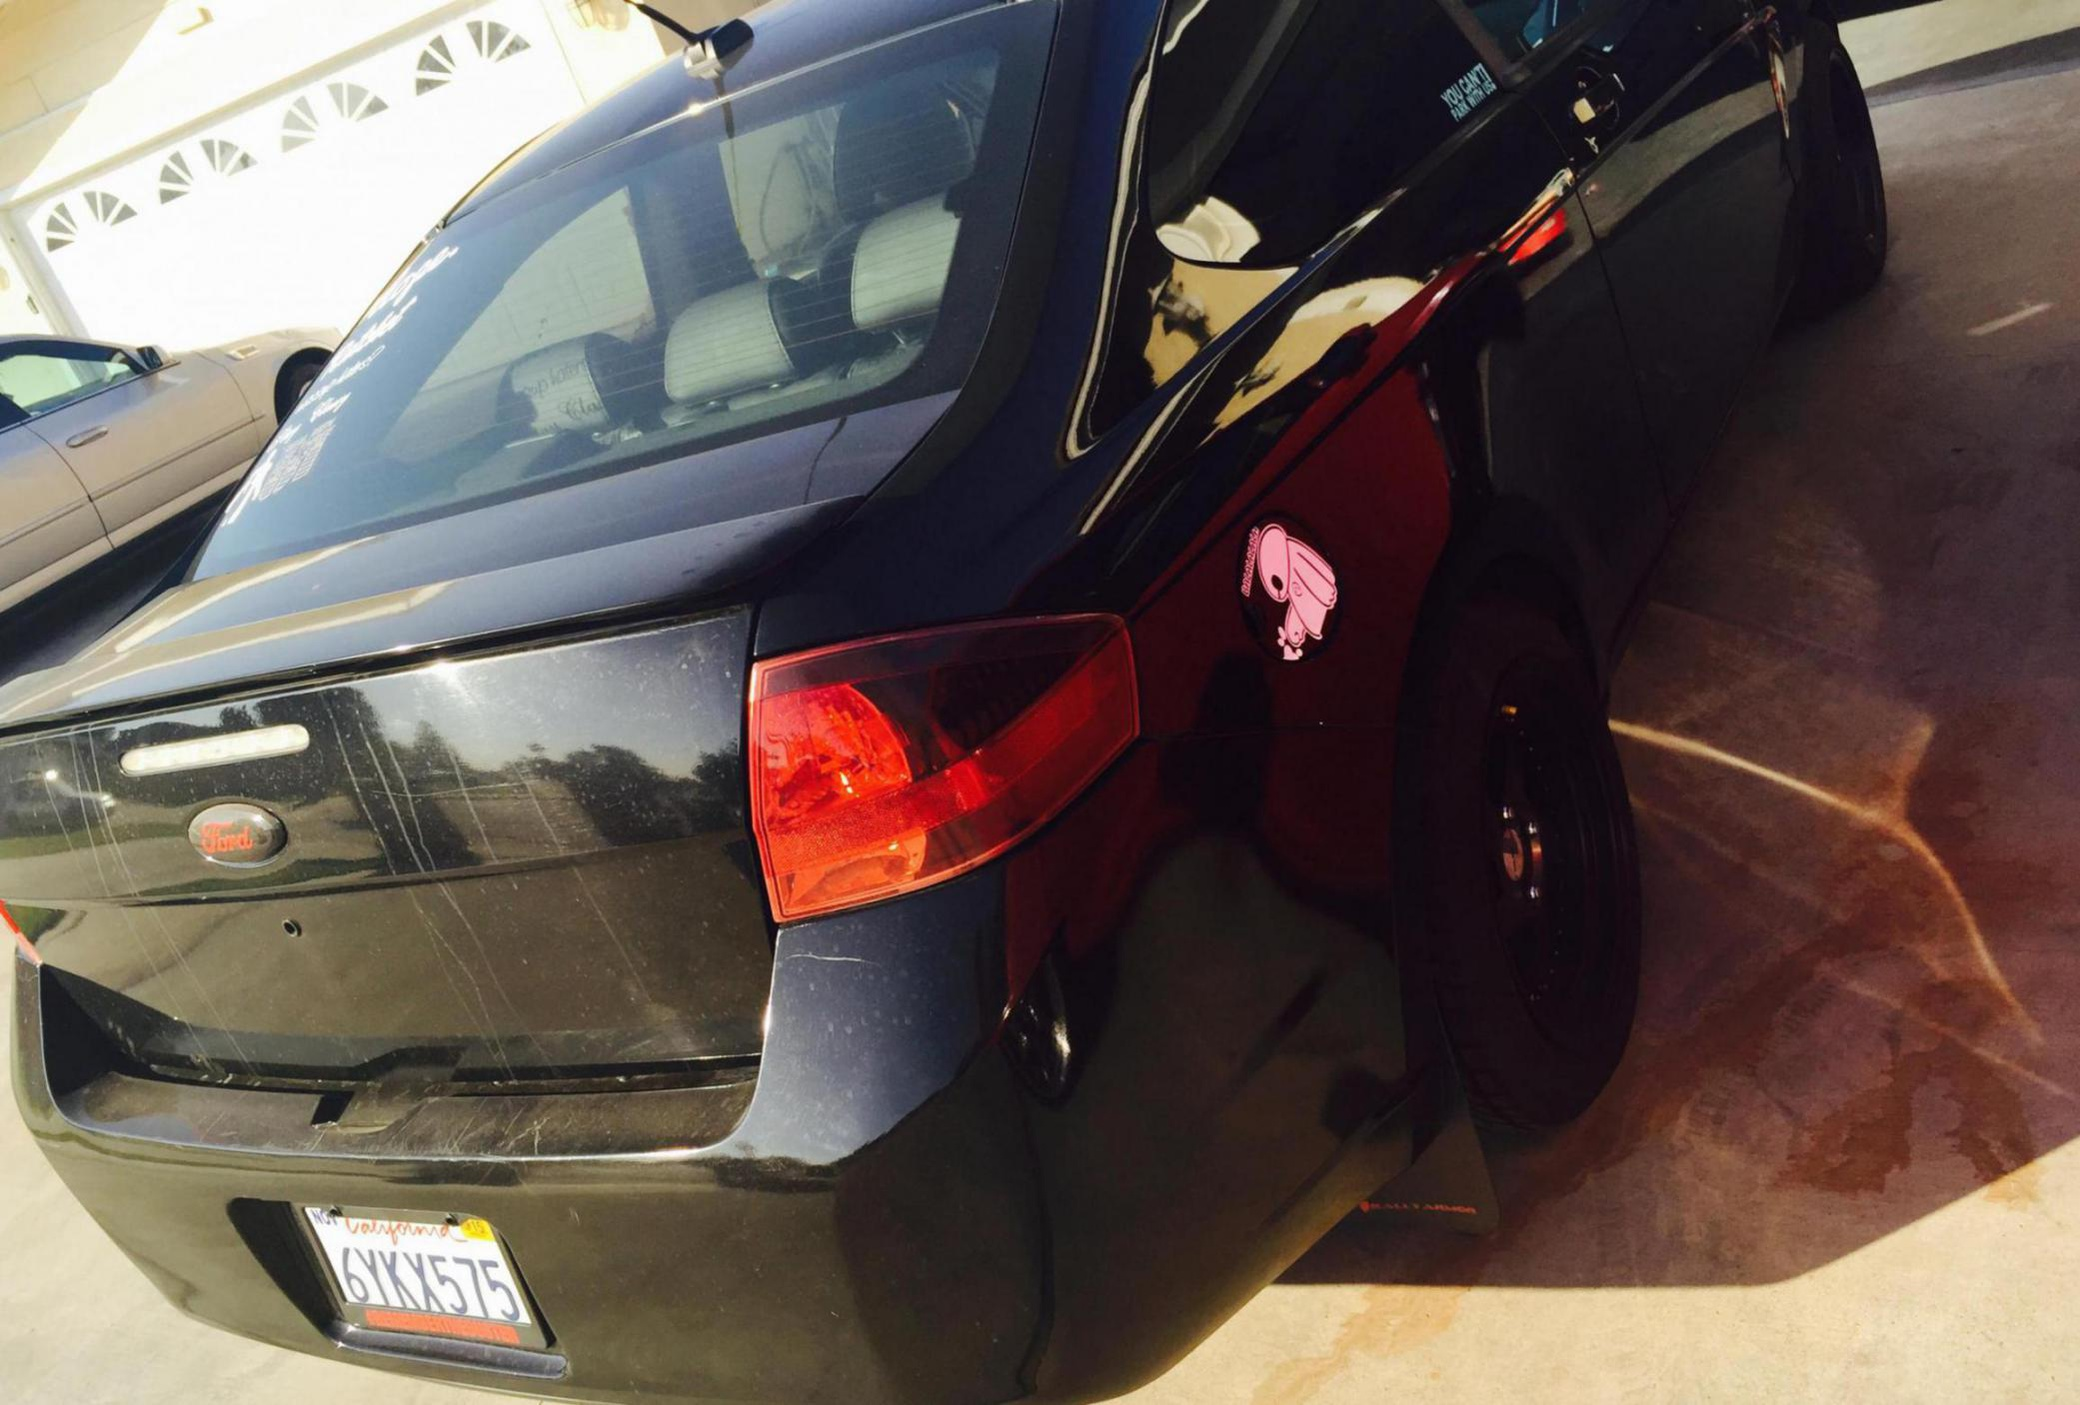 09 Ford Focus question?-image_1440084121312.jpg